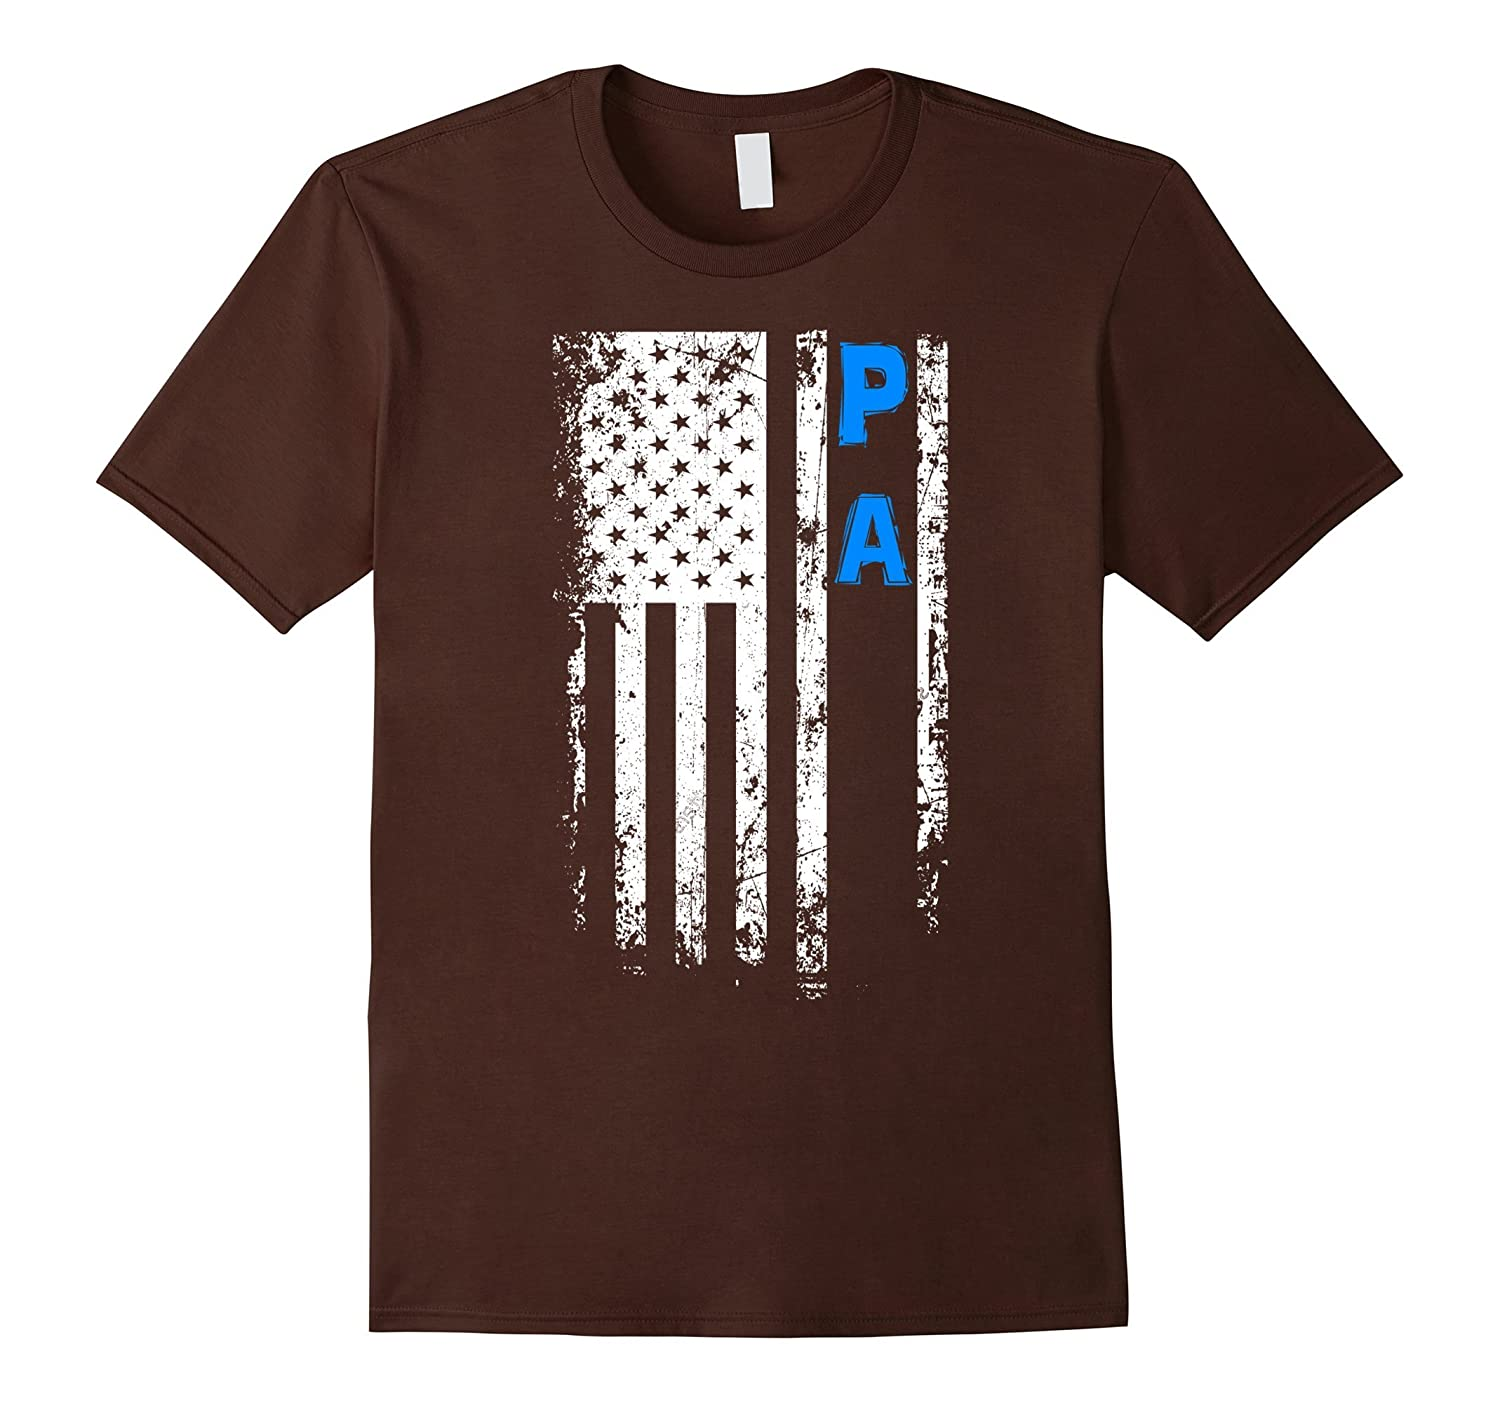 Fathers Day Gift American Blue Pa flag t-shirt-TH